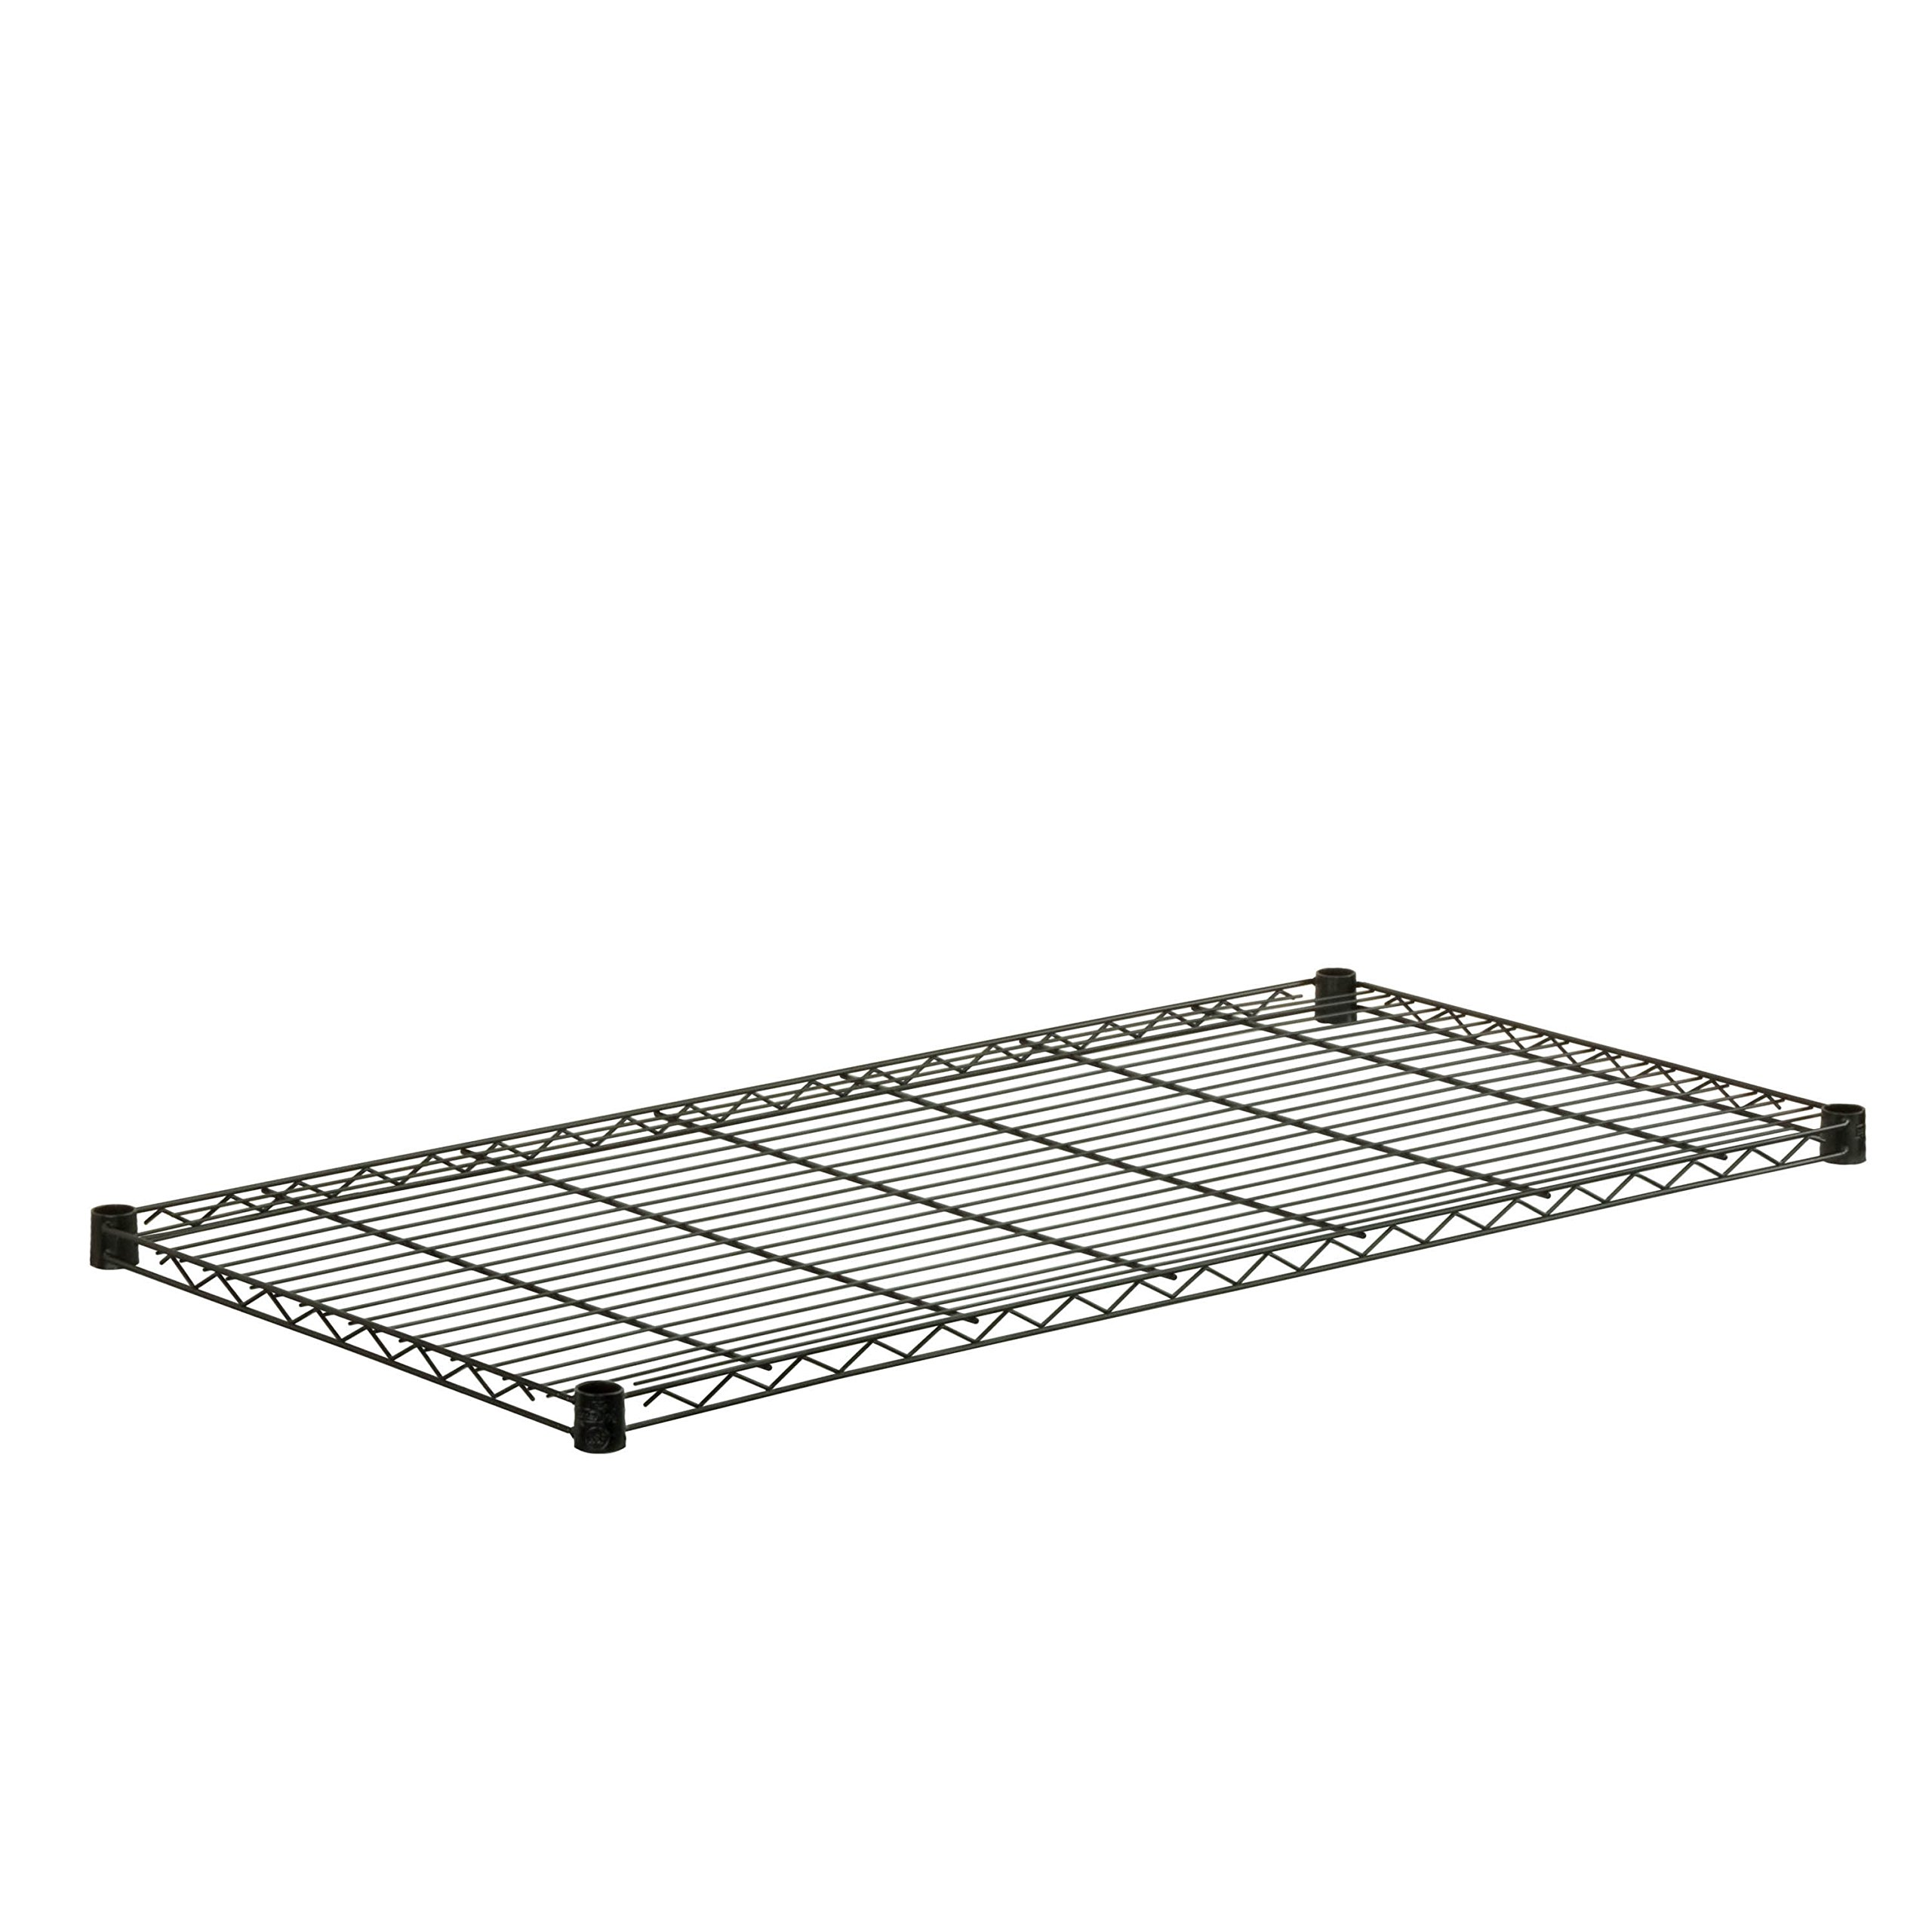 Honey-Can-Do SHF250B1848 Steel Shelf for Urban Shelving Units, 250-Pound Capacity, Black, 18L x 48W